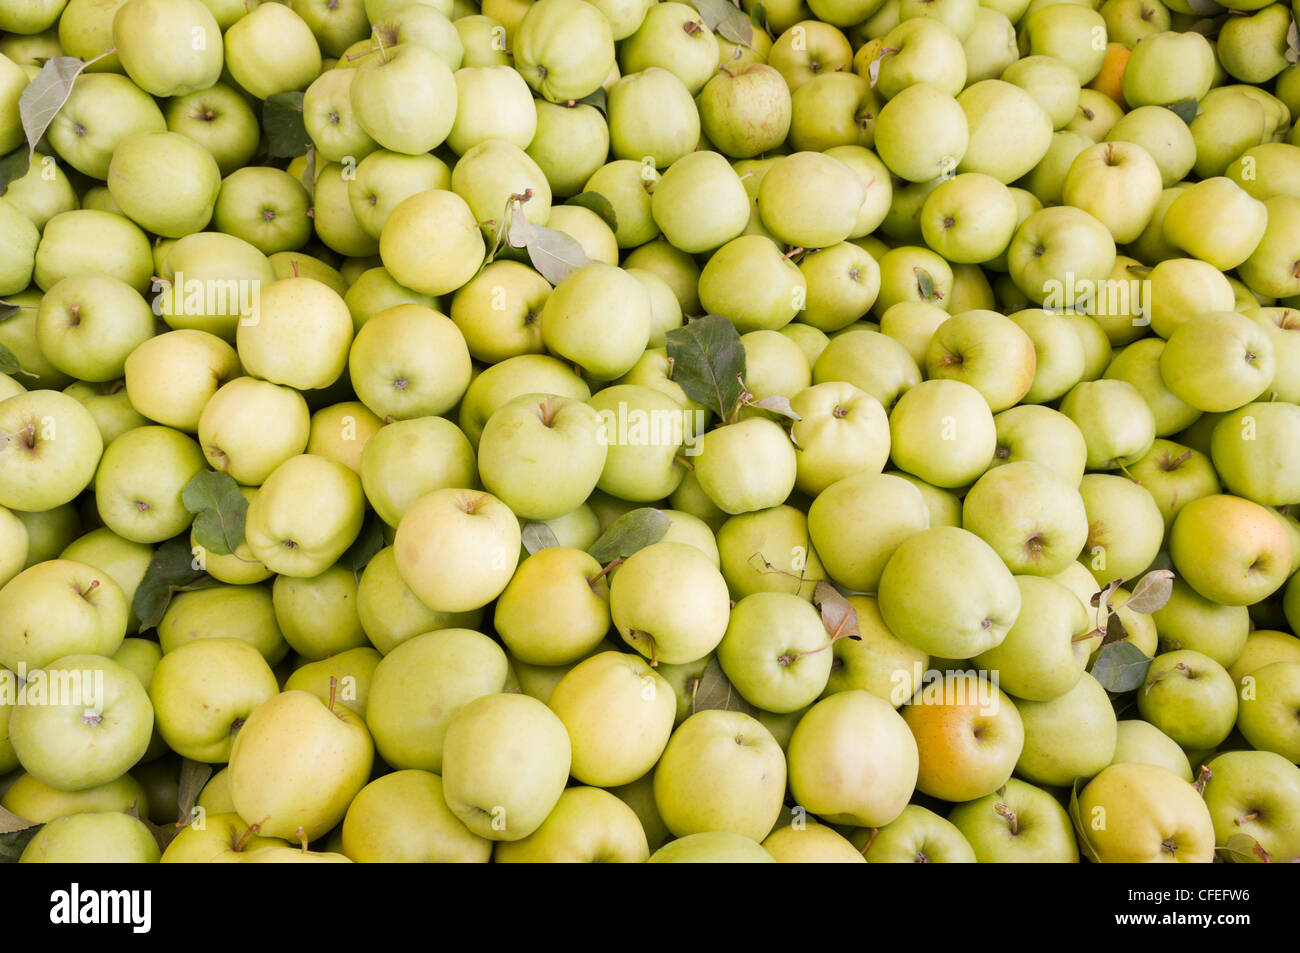 Freshly harvested colorful golden delicious apples on display at the farmers market - Stock Image